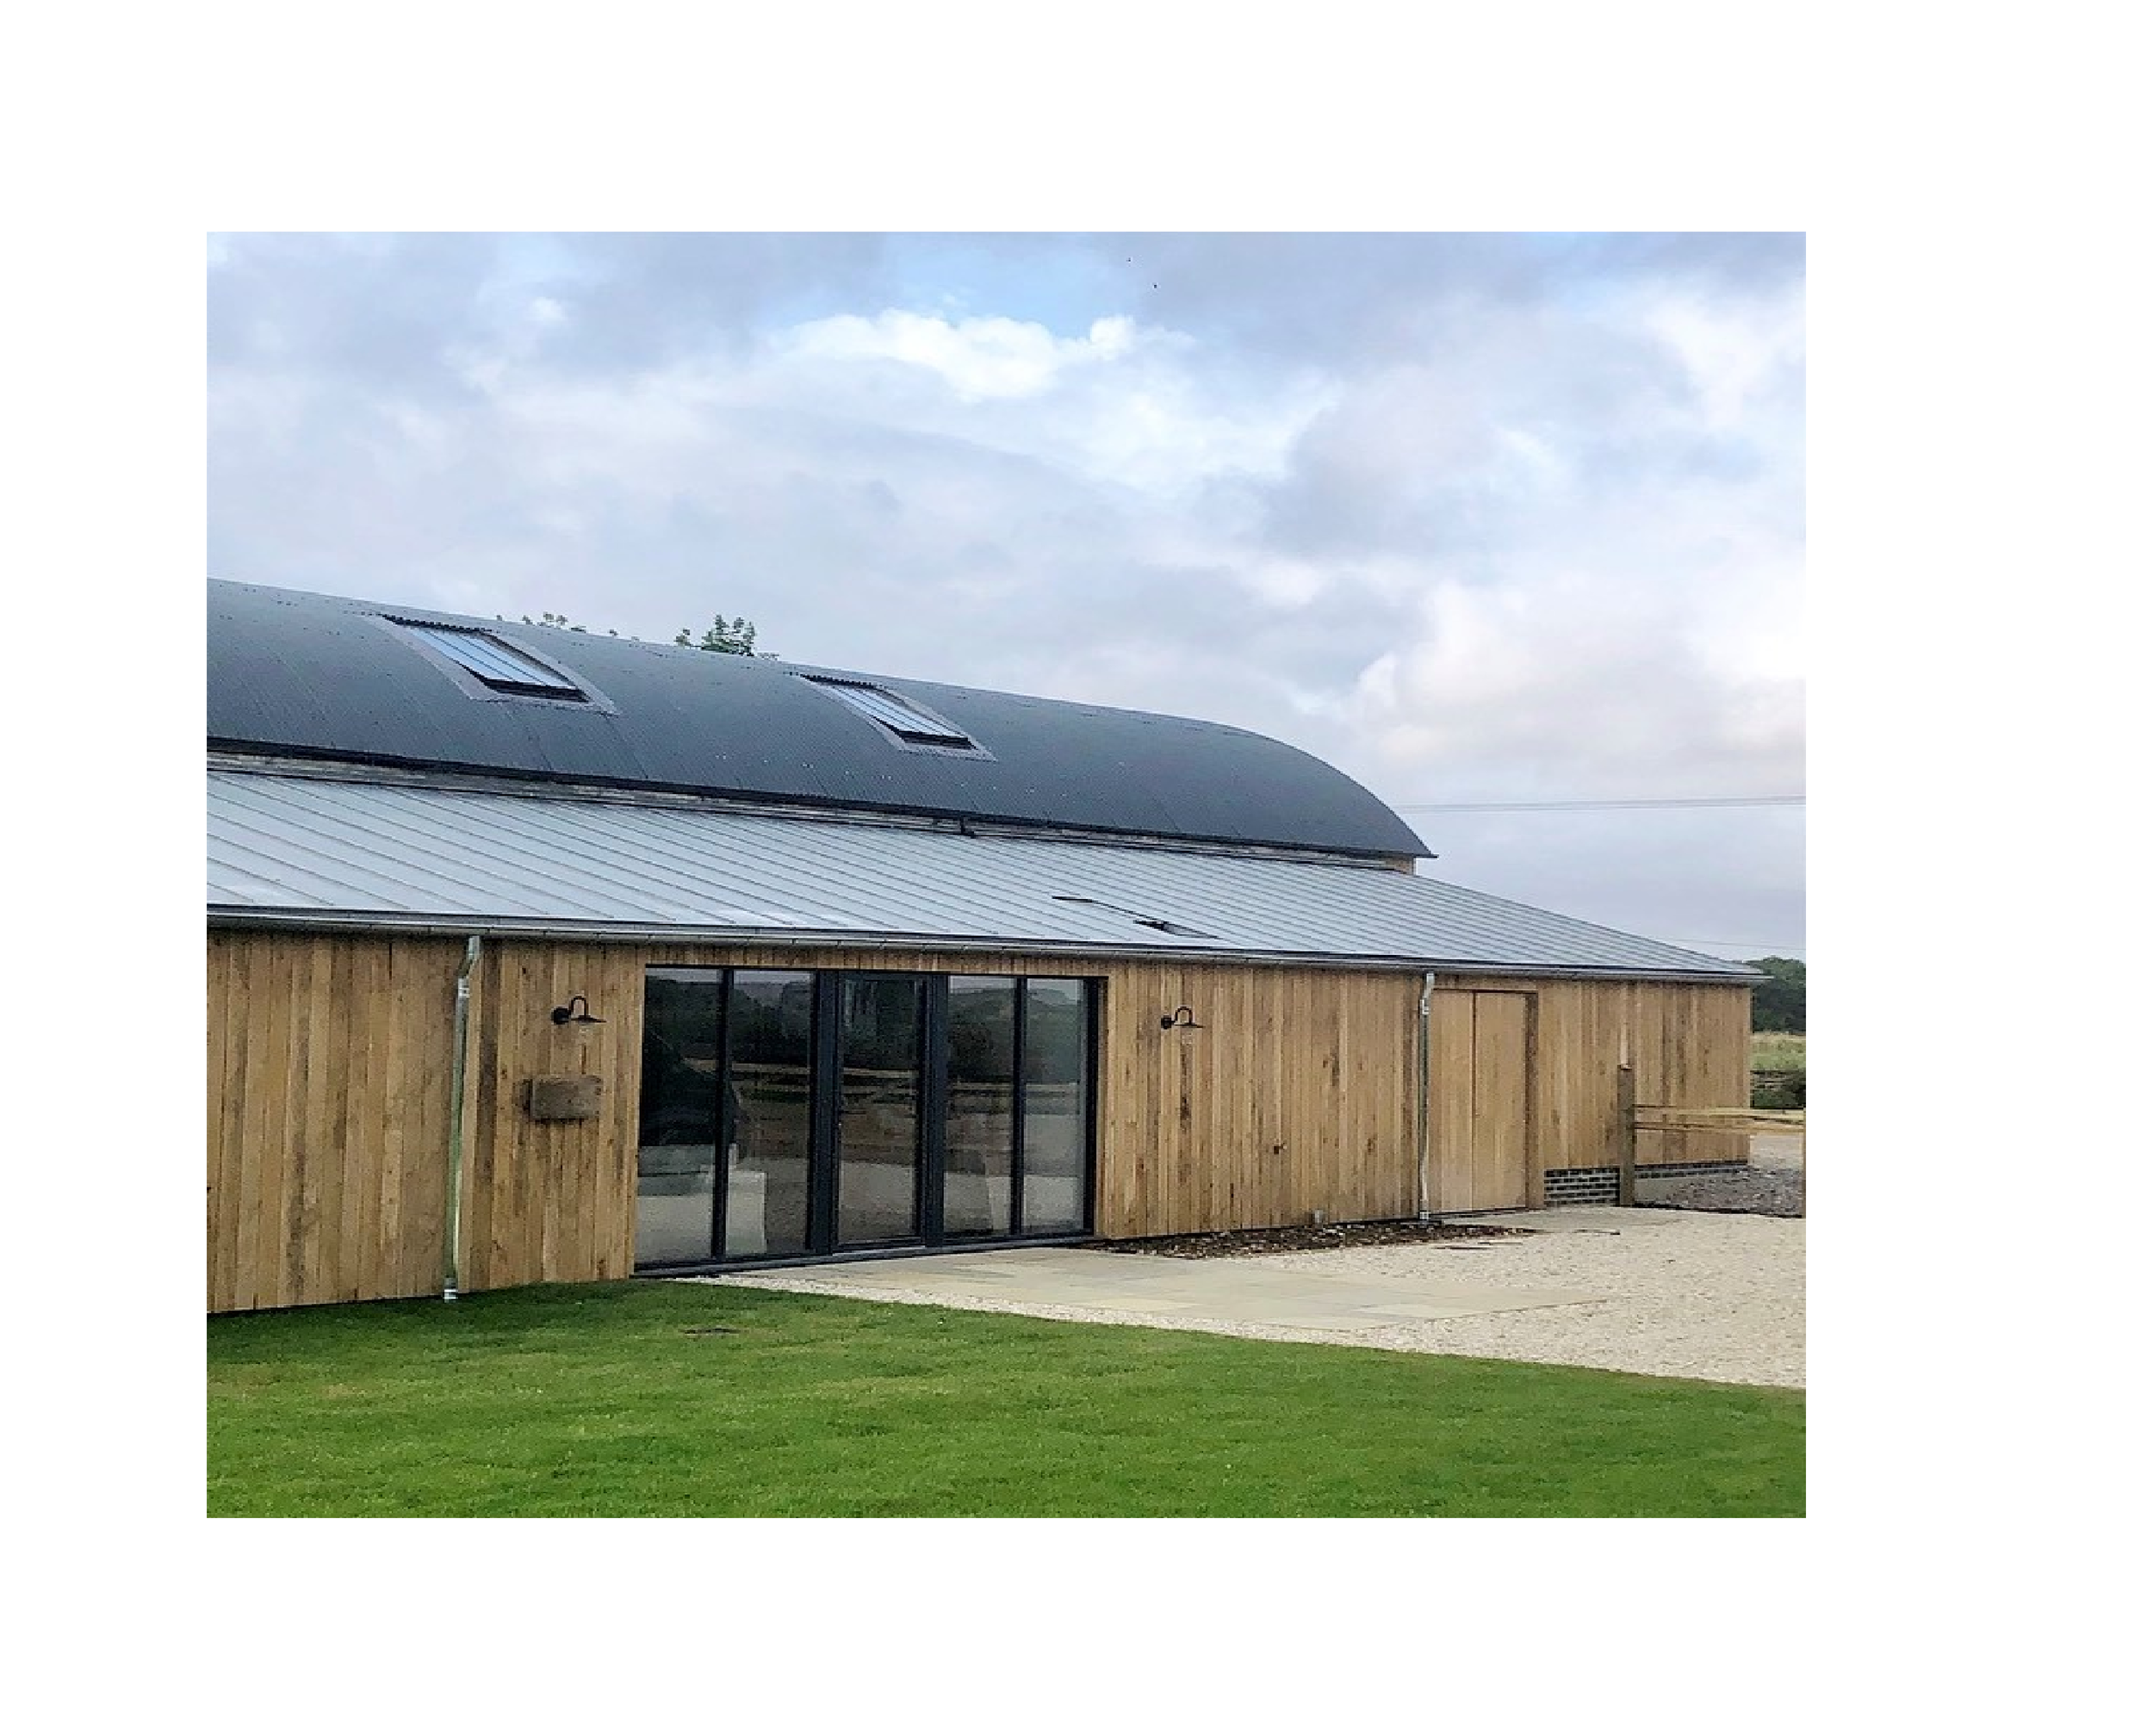 BIBURY FARM HOUSE - An extensive renovation project completed in 2019, that saw Natural VM zinc used on both the existing farm house buildings and new barn extension. All finished with natural VM gutters and down pipes.